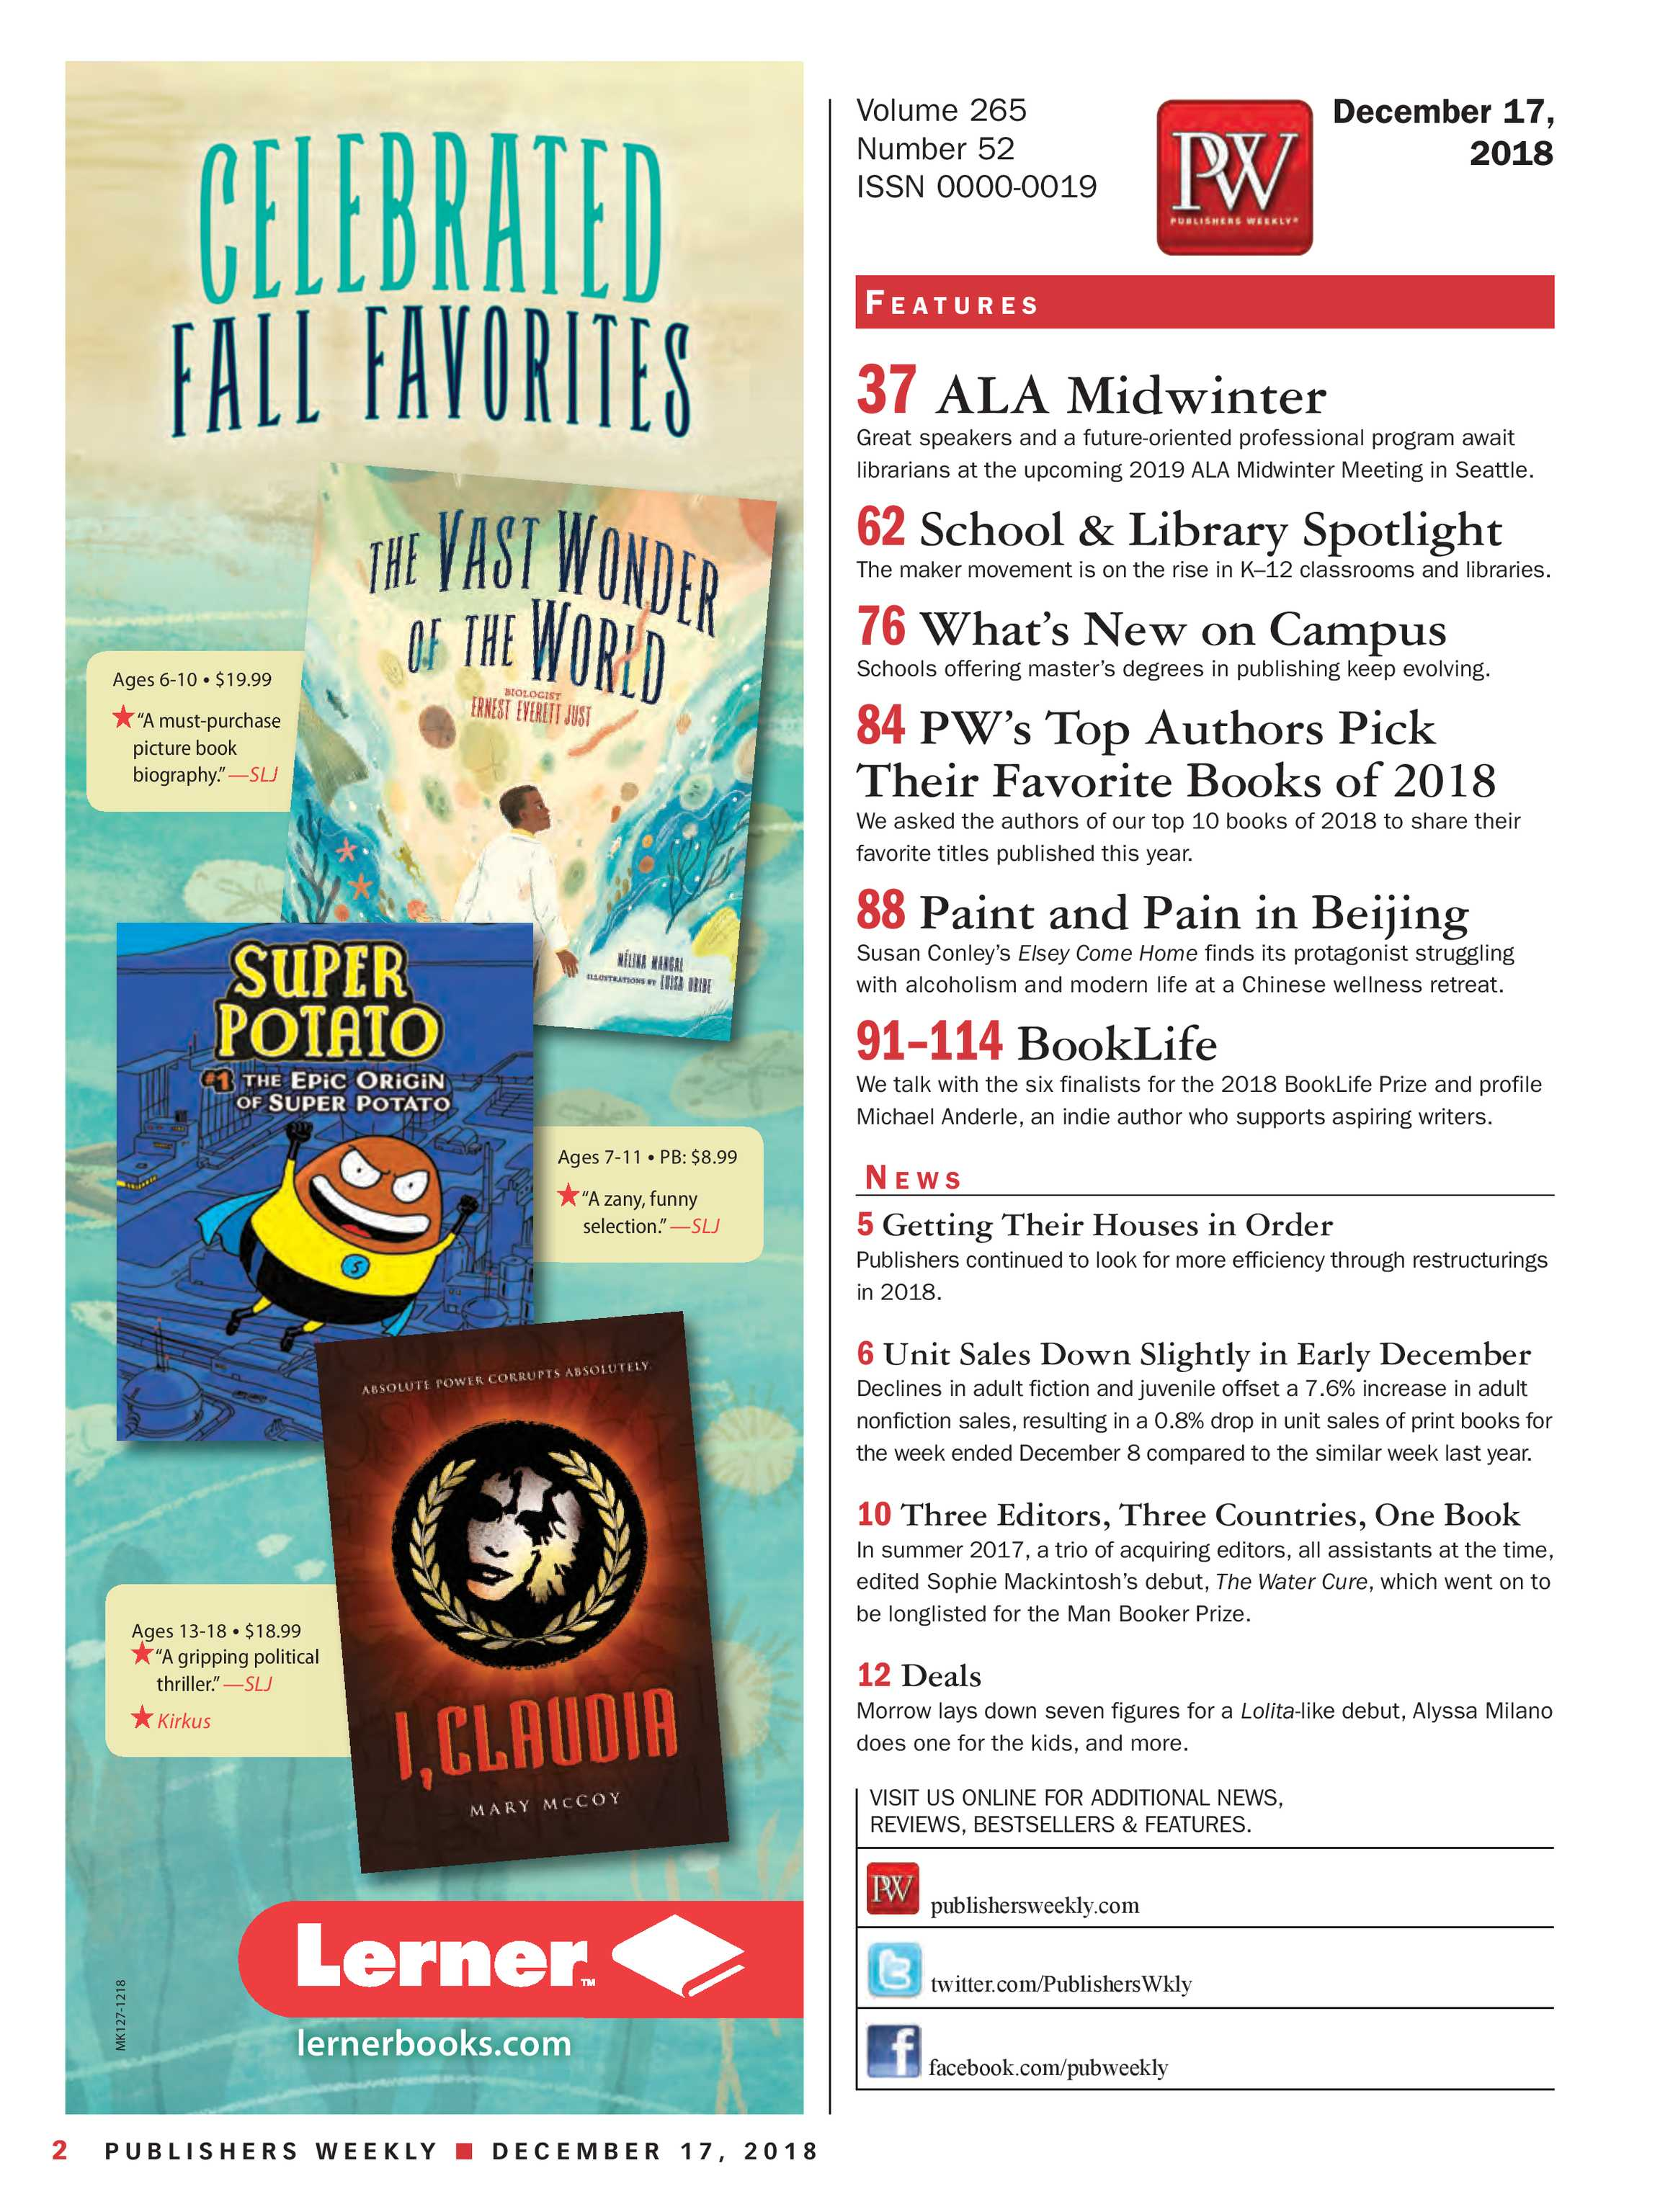 Publishers Weekly - December 17, 2018 - page 3